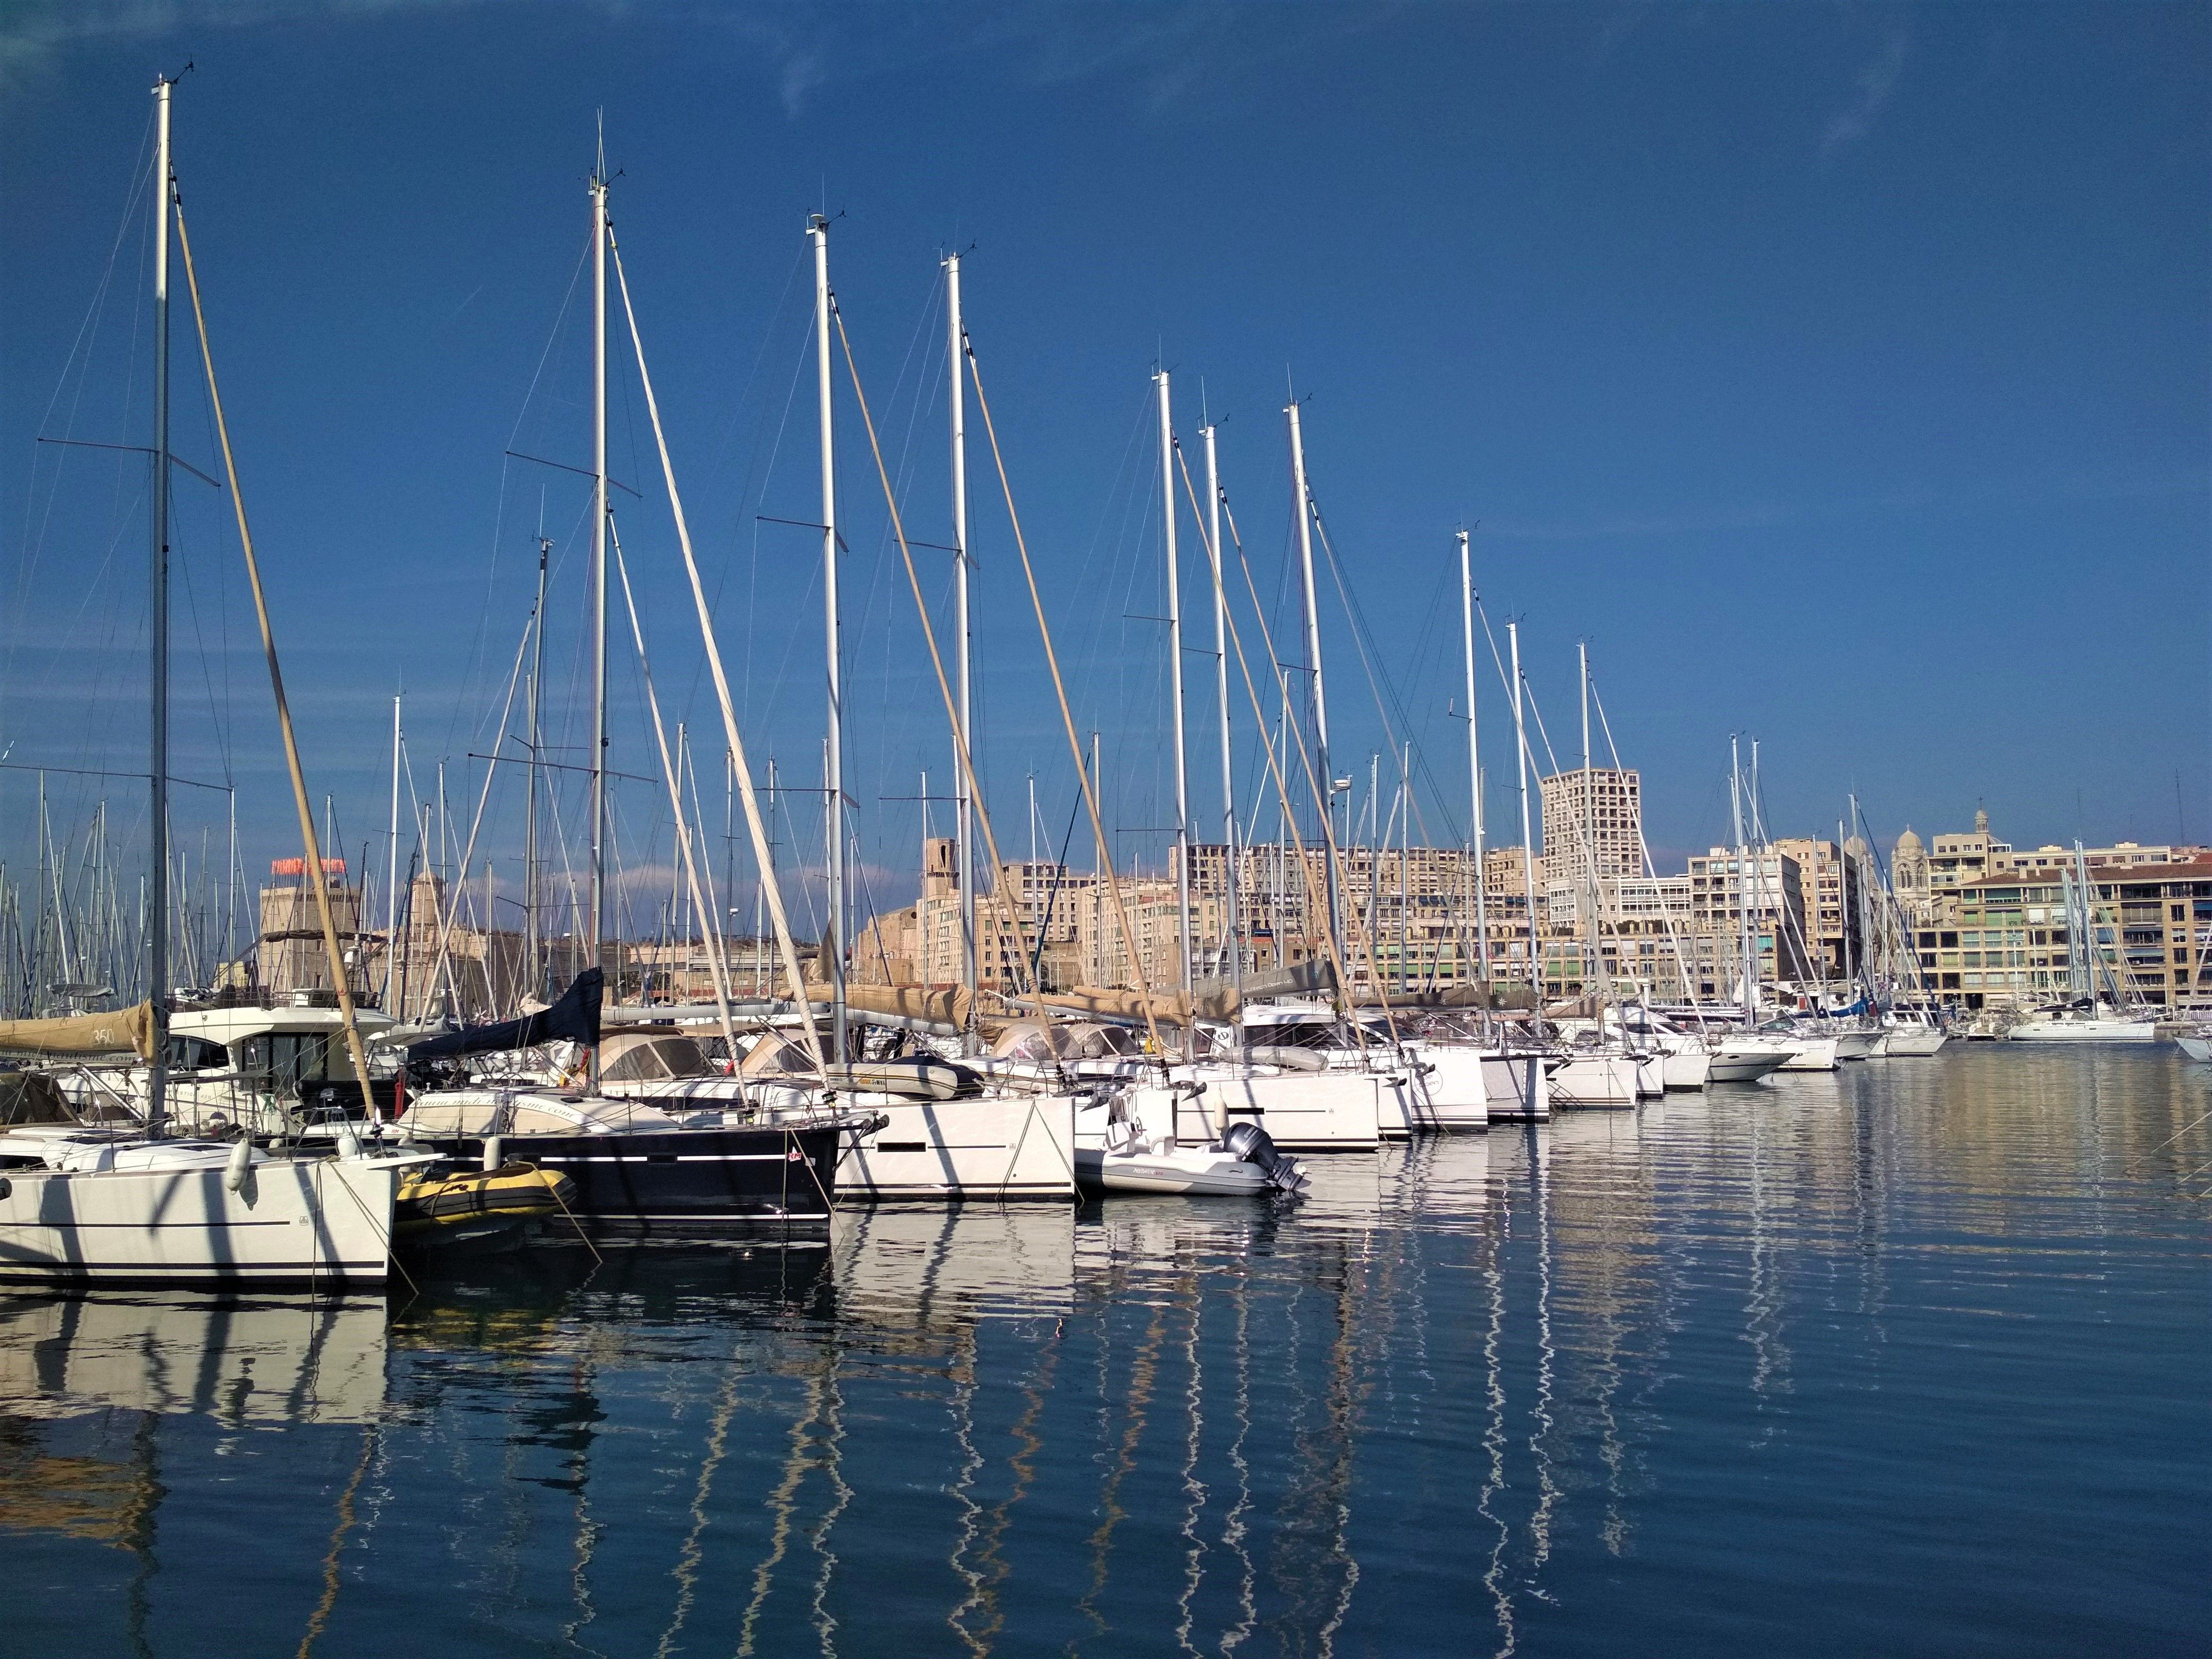 The Old Port, Marseille